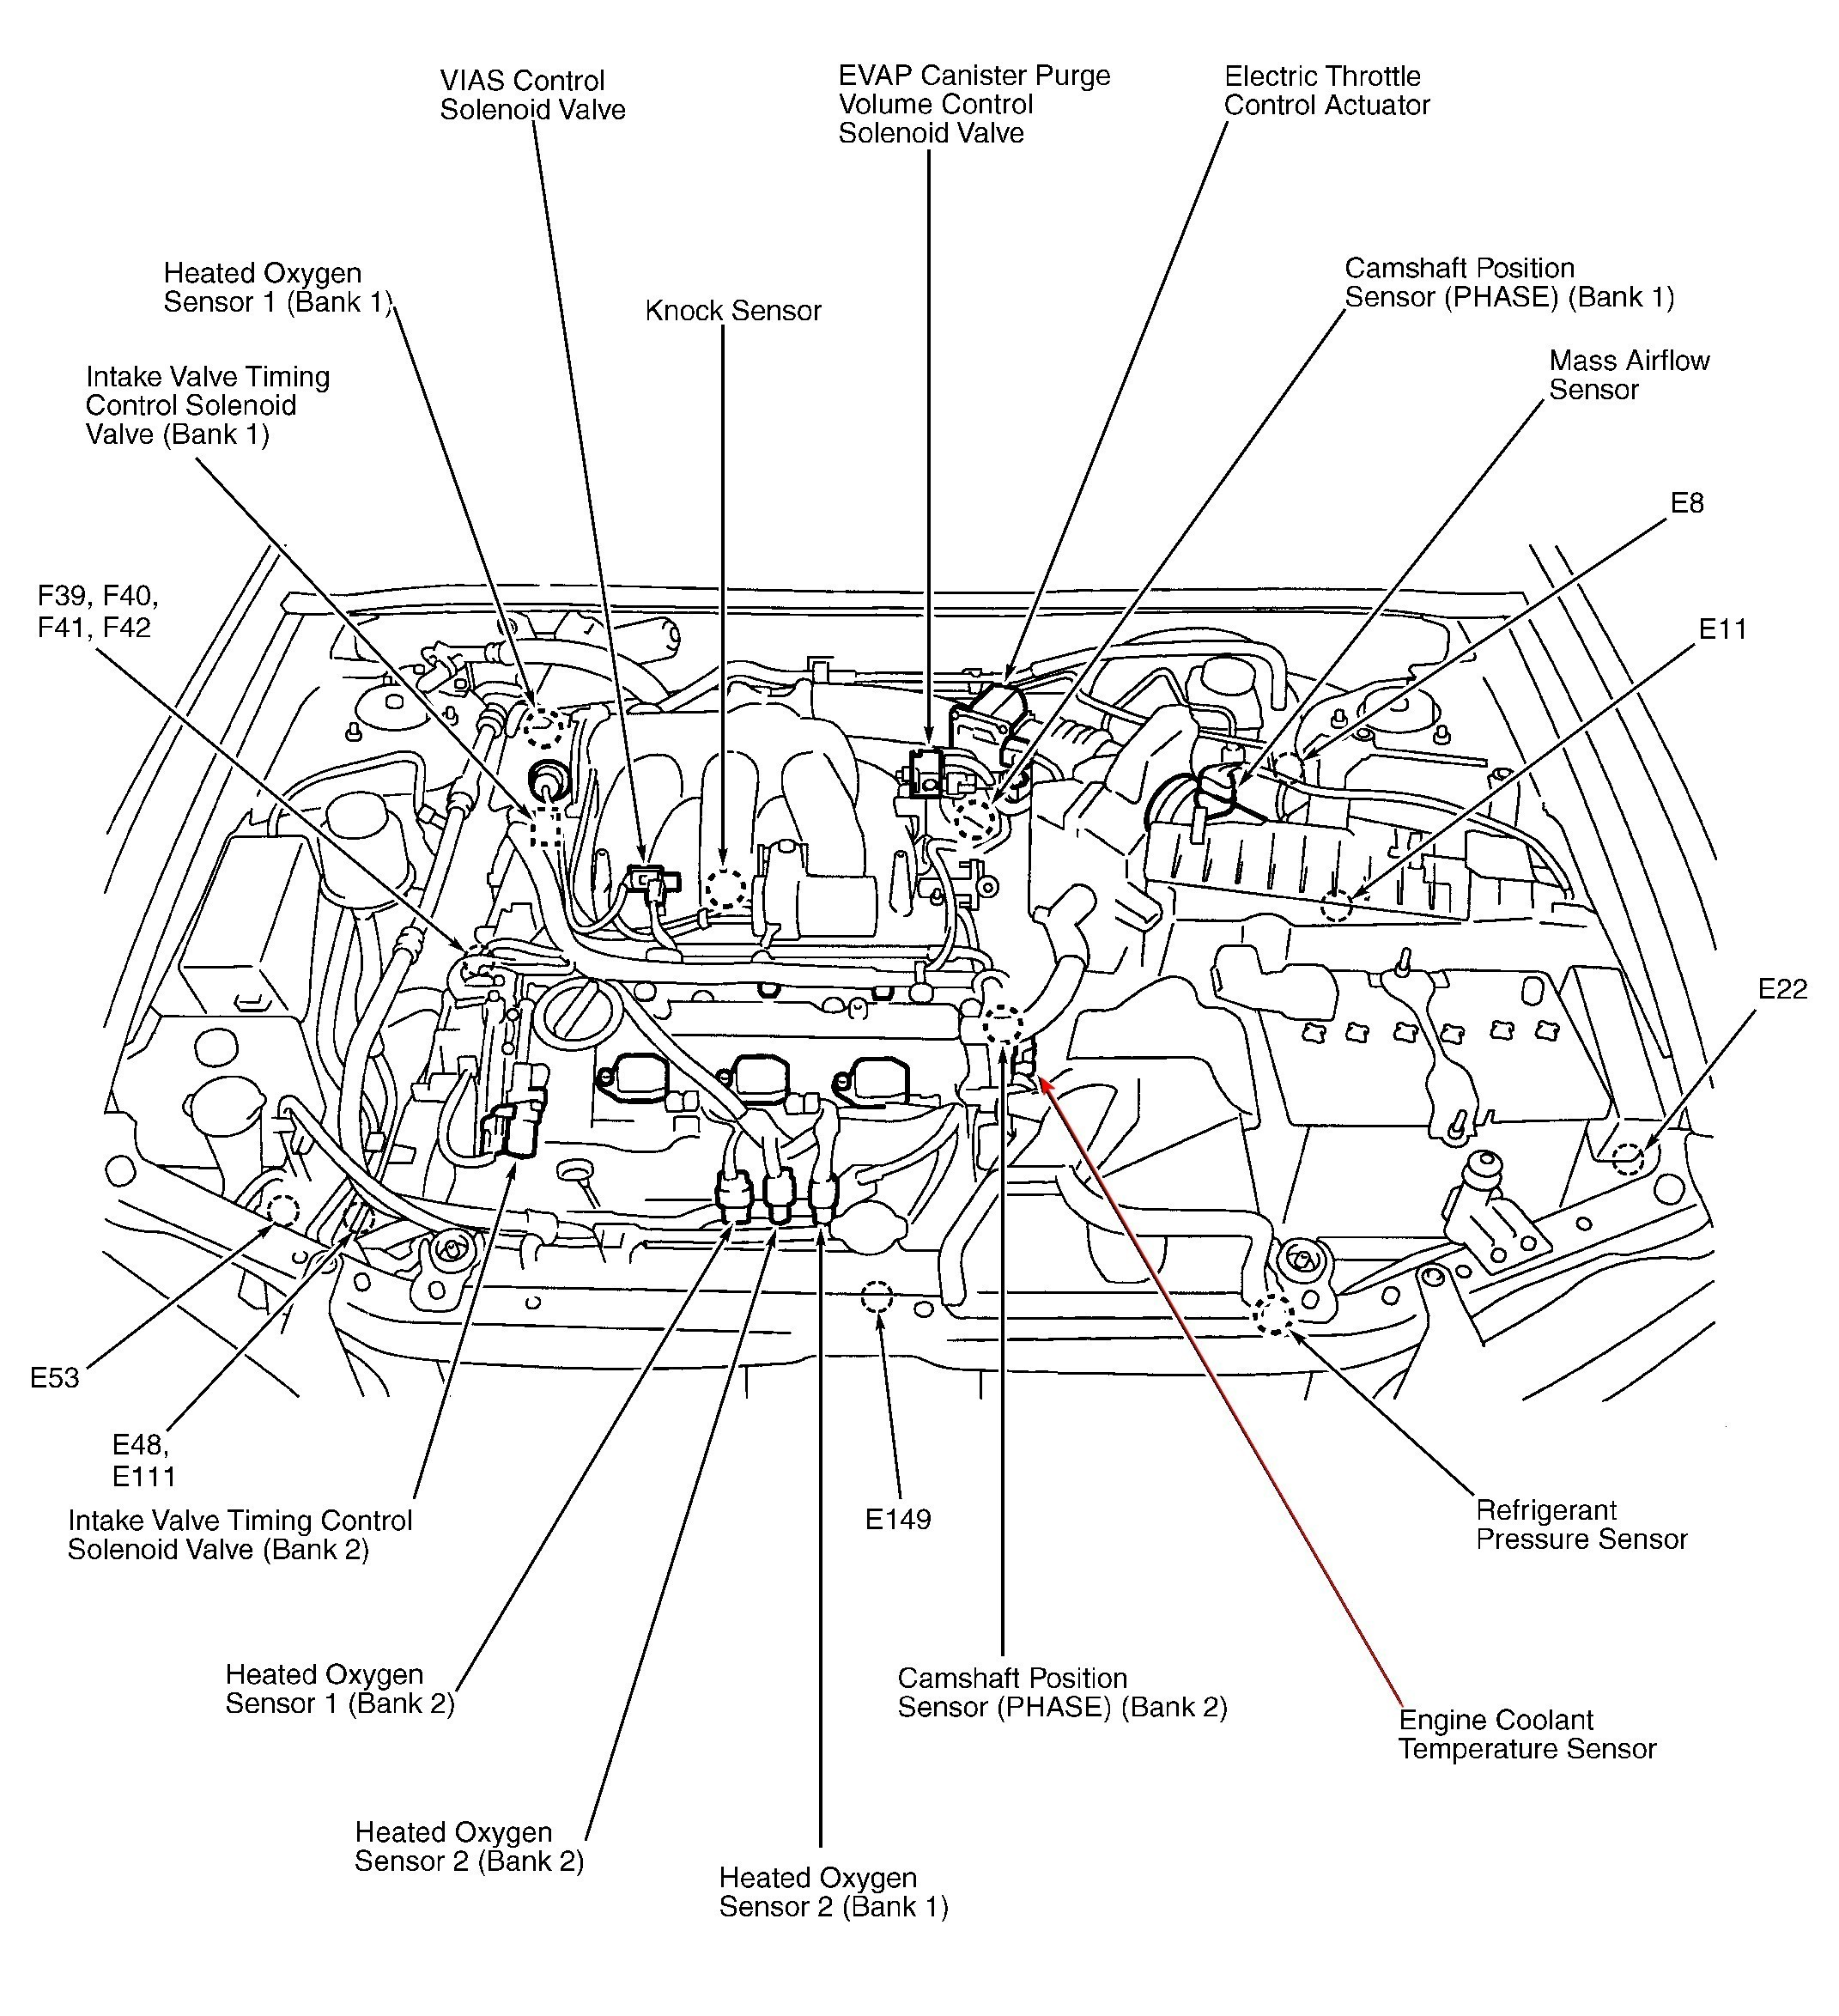 2003 Nissan Altima Engine Diagram Wire Diagram for 1999 Nissan Sentra Nissan Wiring Diagrams Of 2003 Nissan Altima Engine Diagram